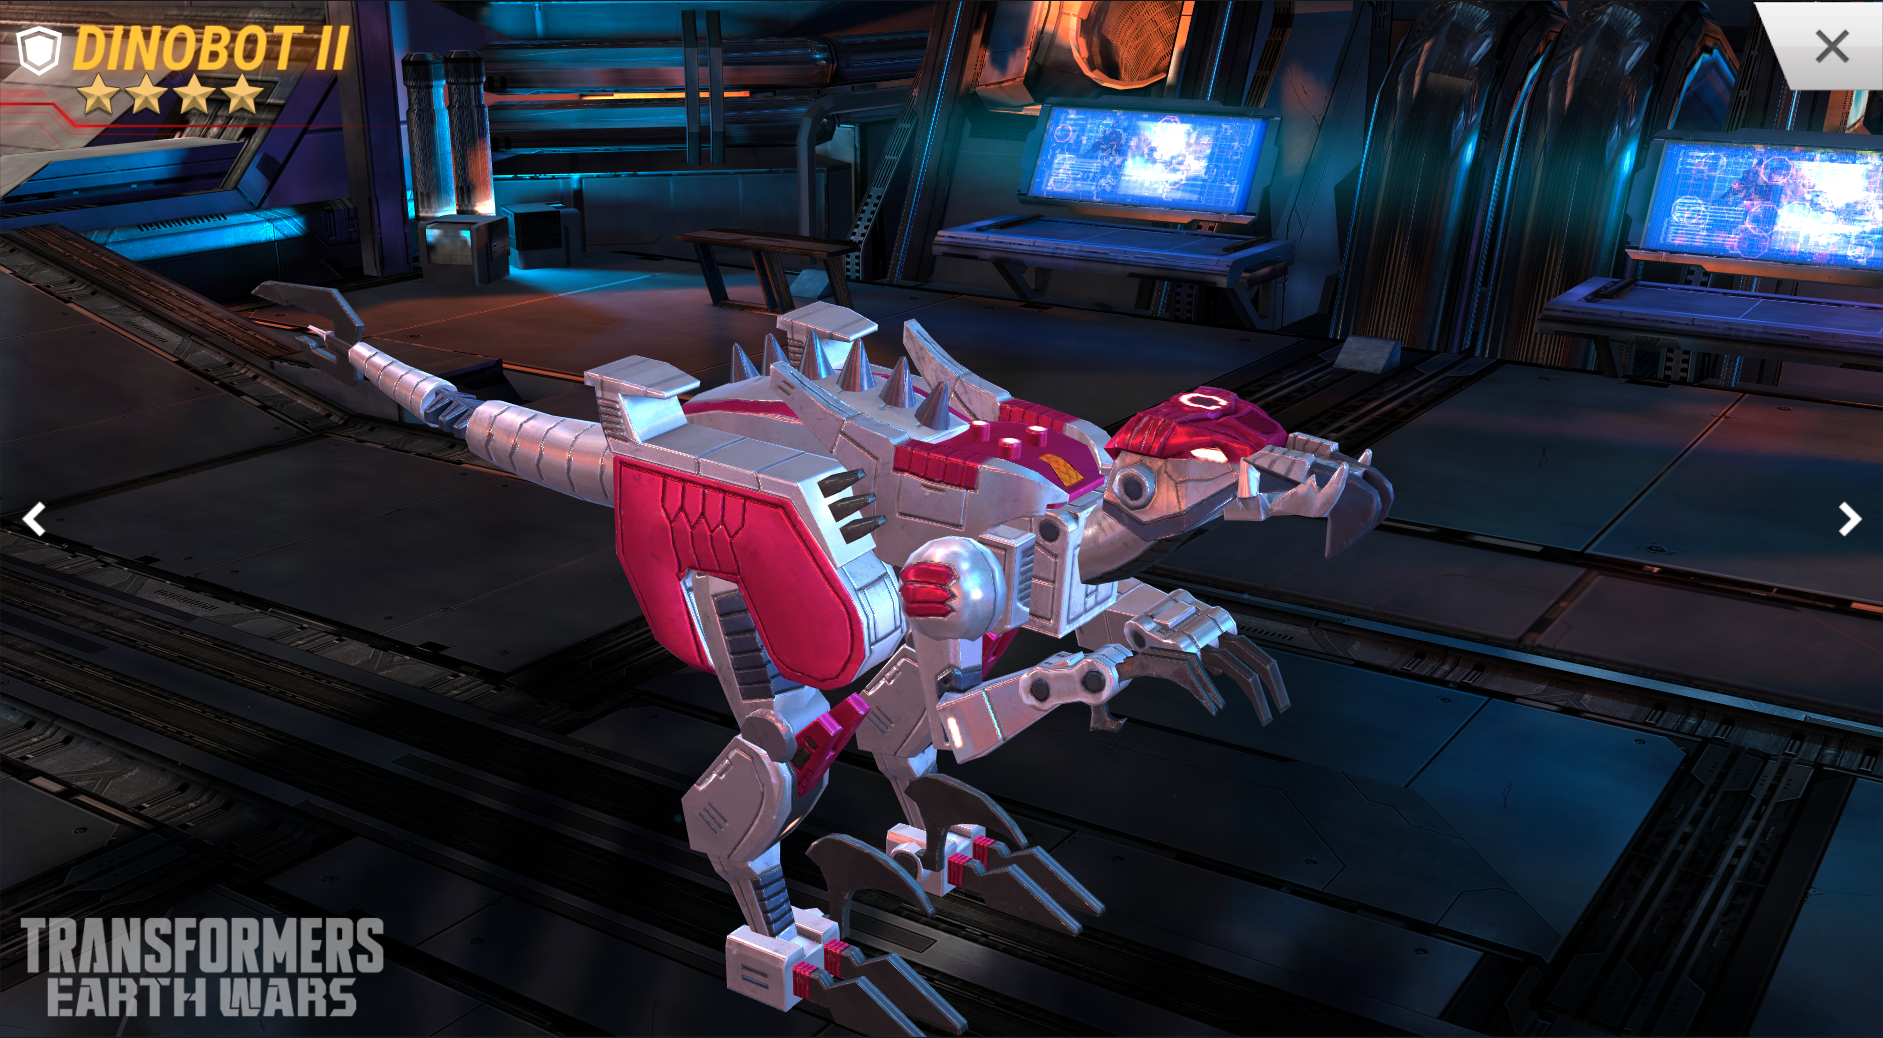 Transformers News: Transformers Earth Wars Event Primeval Spark with Looks during Dinobot and Dinobot II